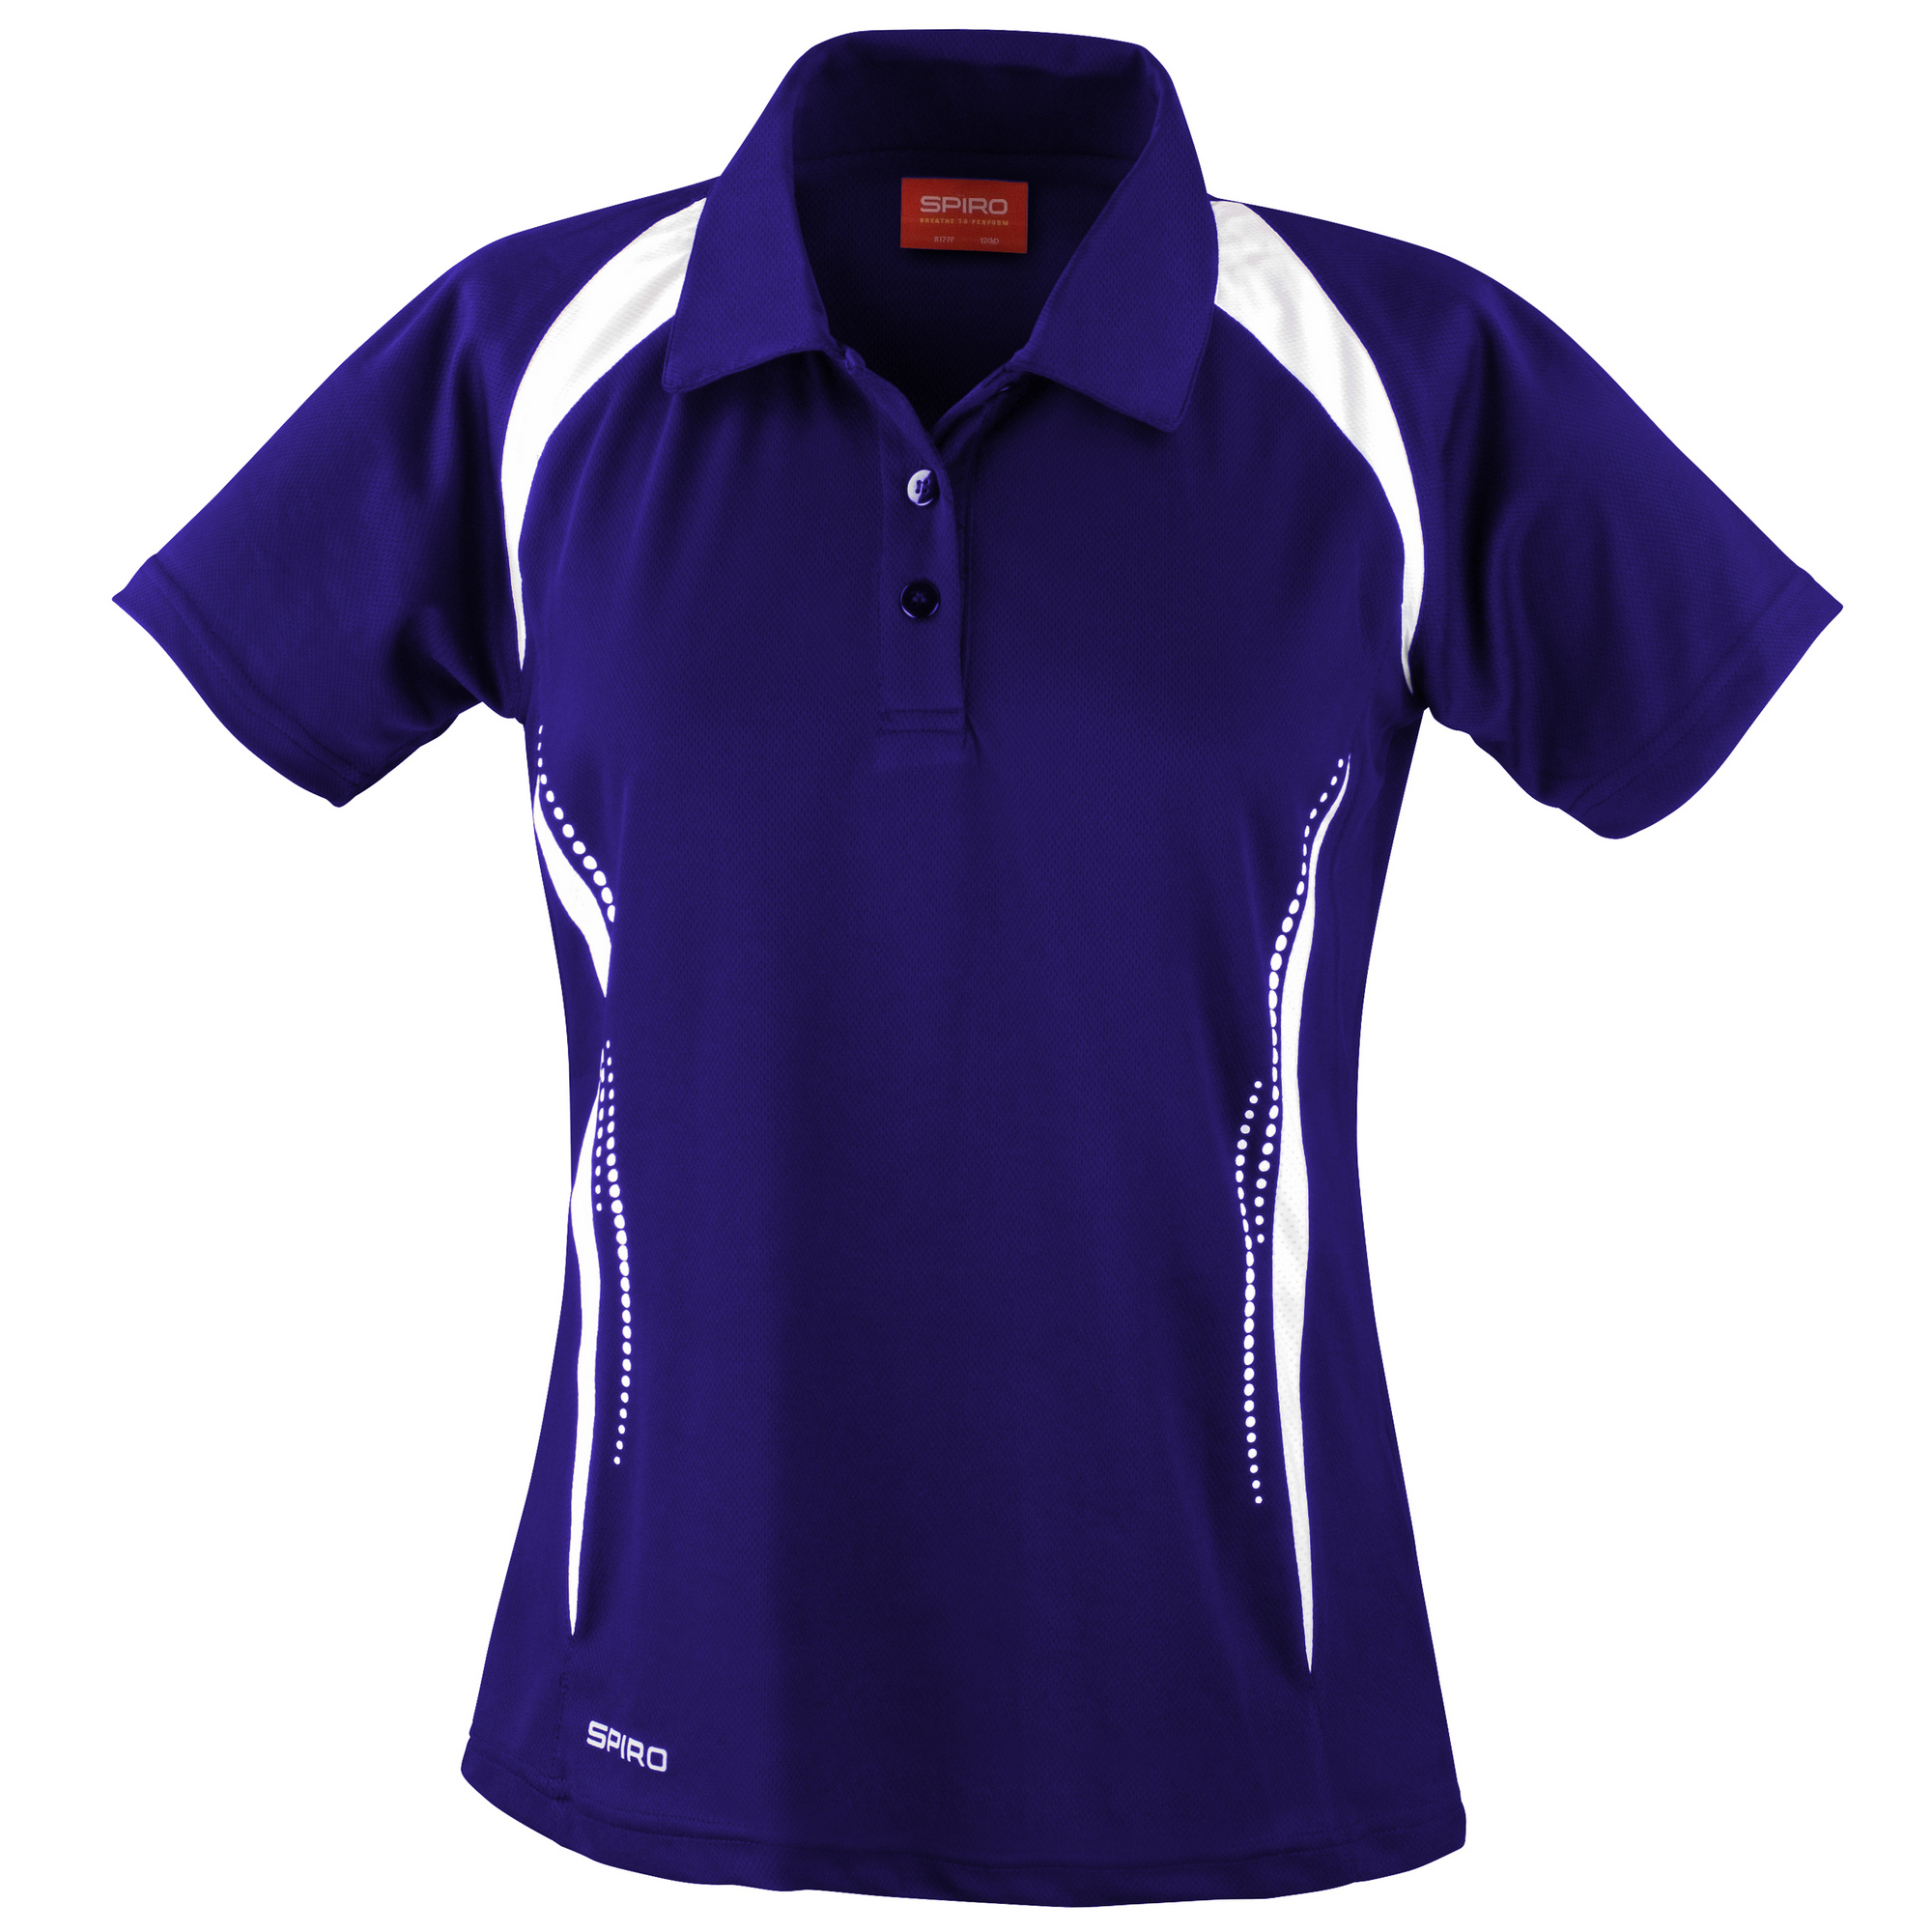 spiro womens ladies sports team spirit performance polo shirt ebay. Black Bedroom Furniture Sets. Home Design Ideas